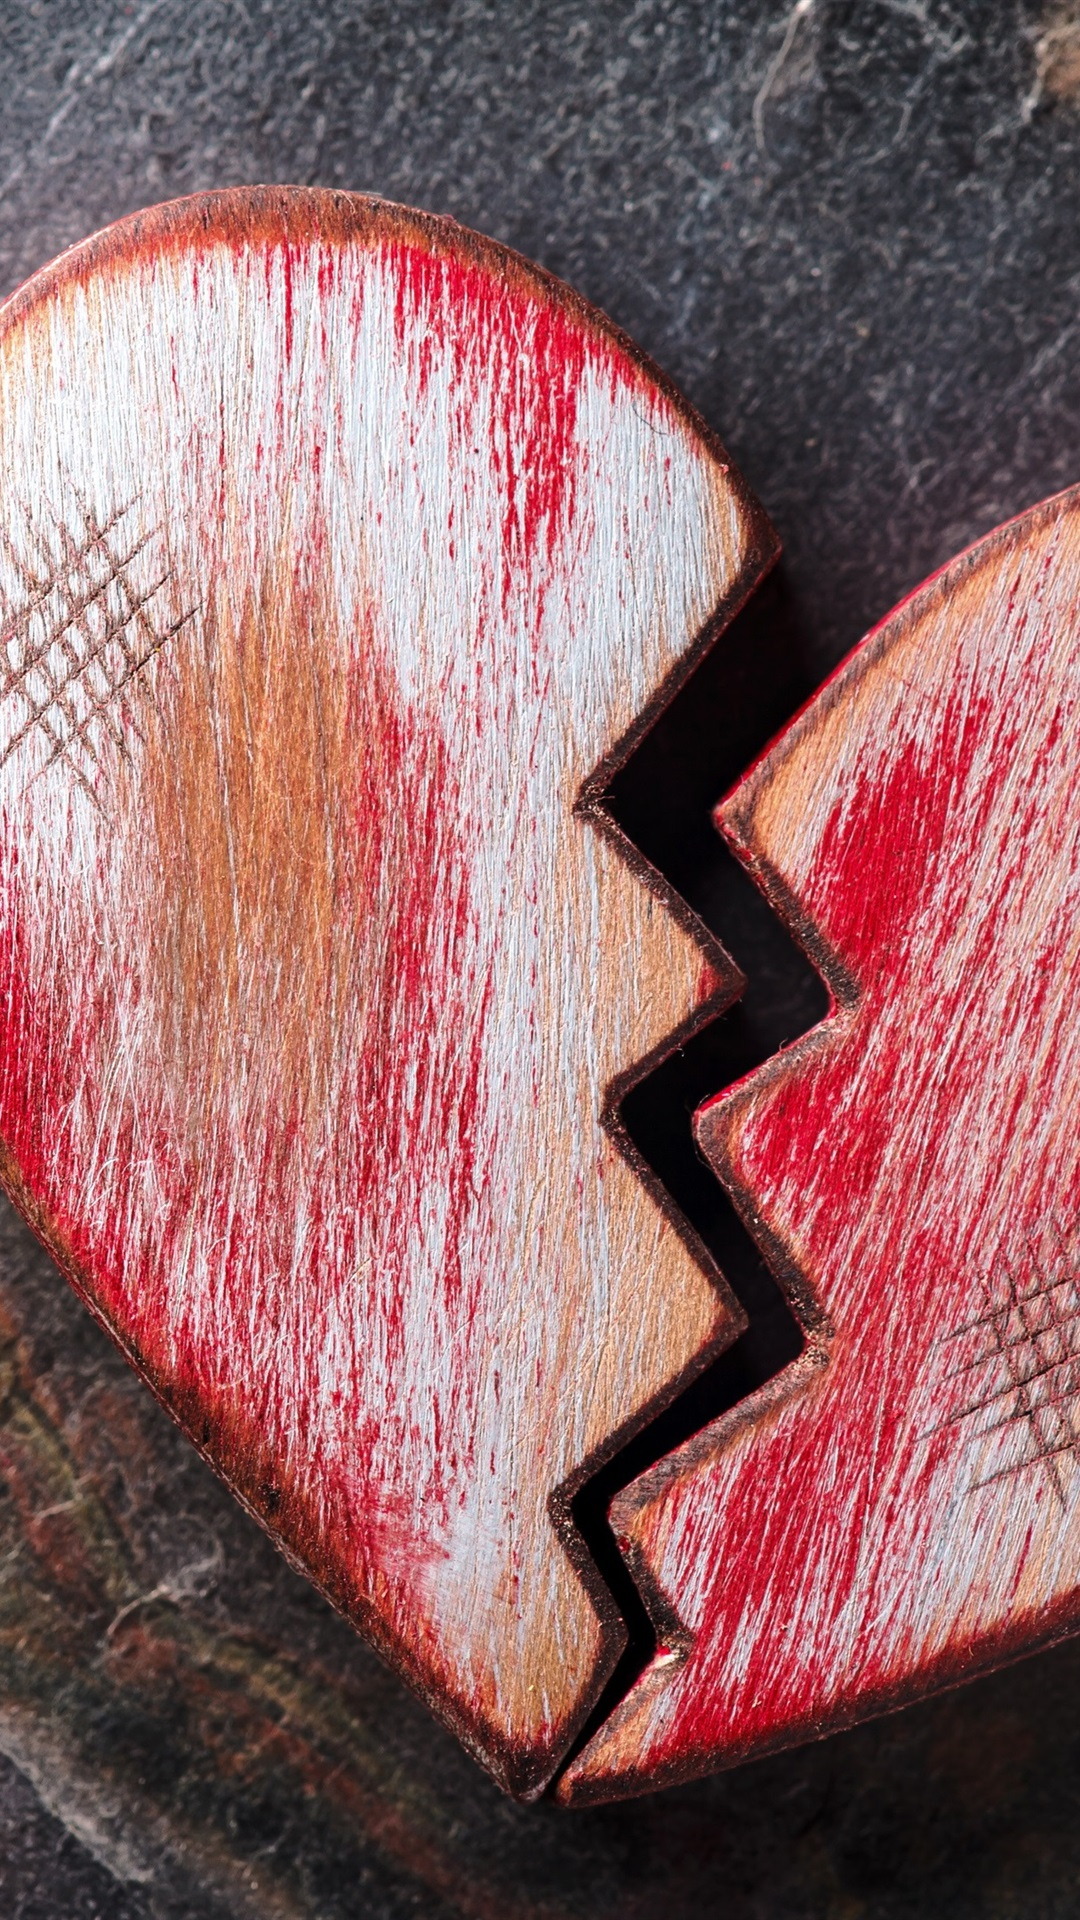 Wallpaper Broken Heart Wooden 3840x2160 Uhd 4k Picture Image